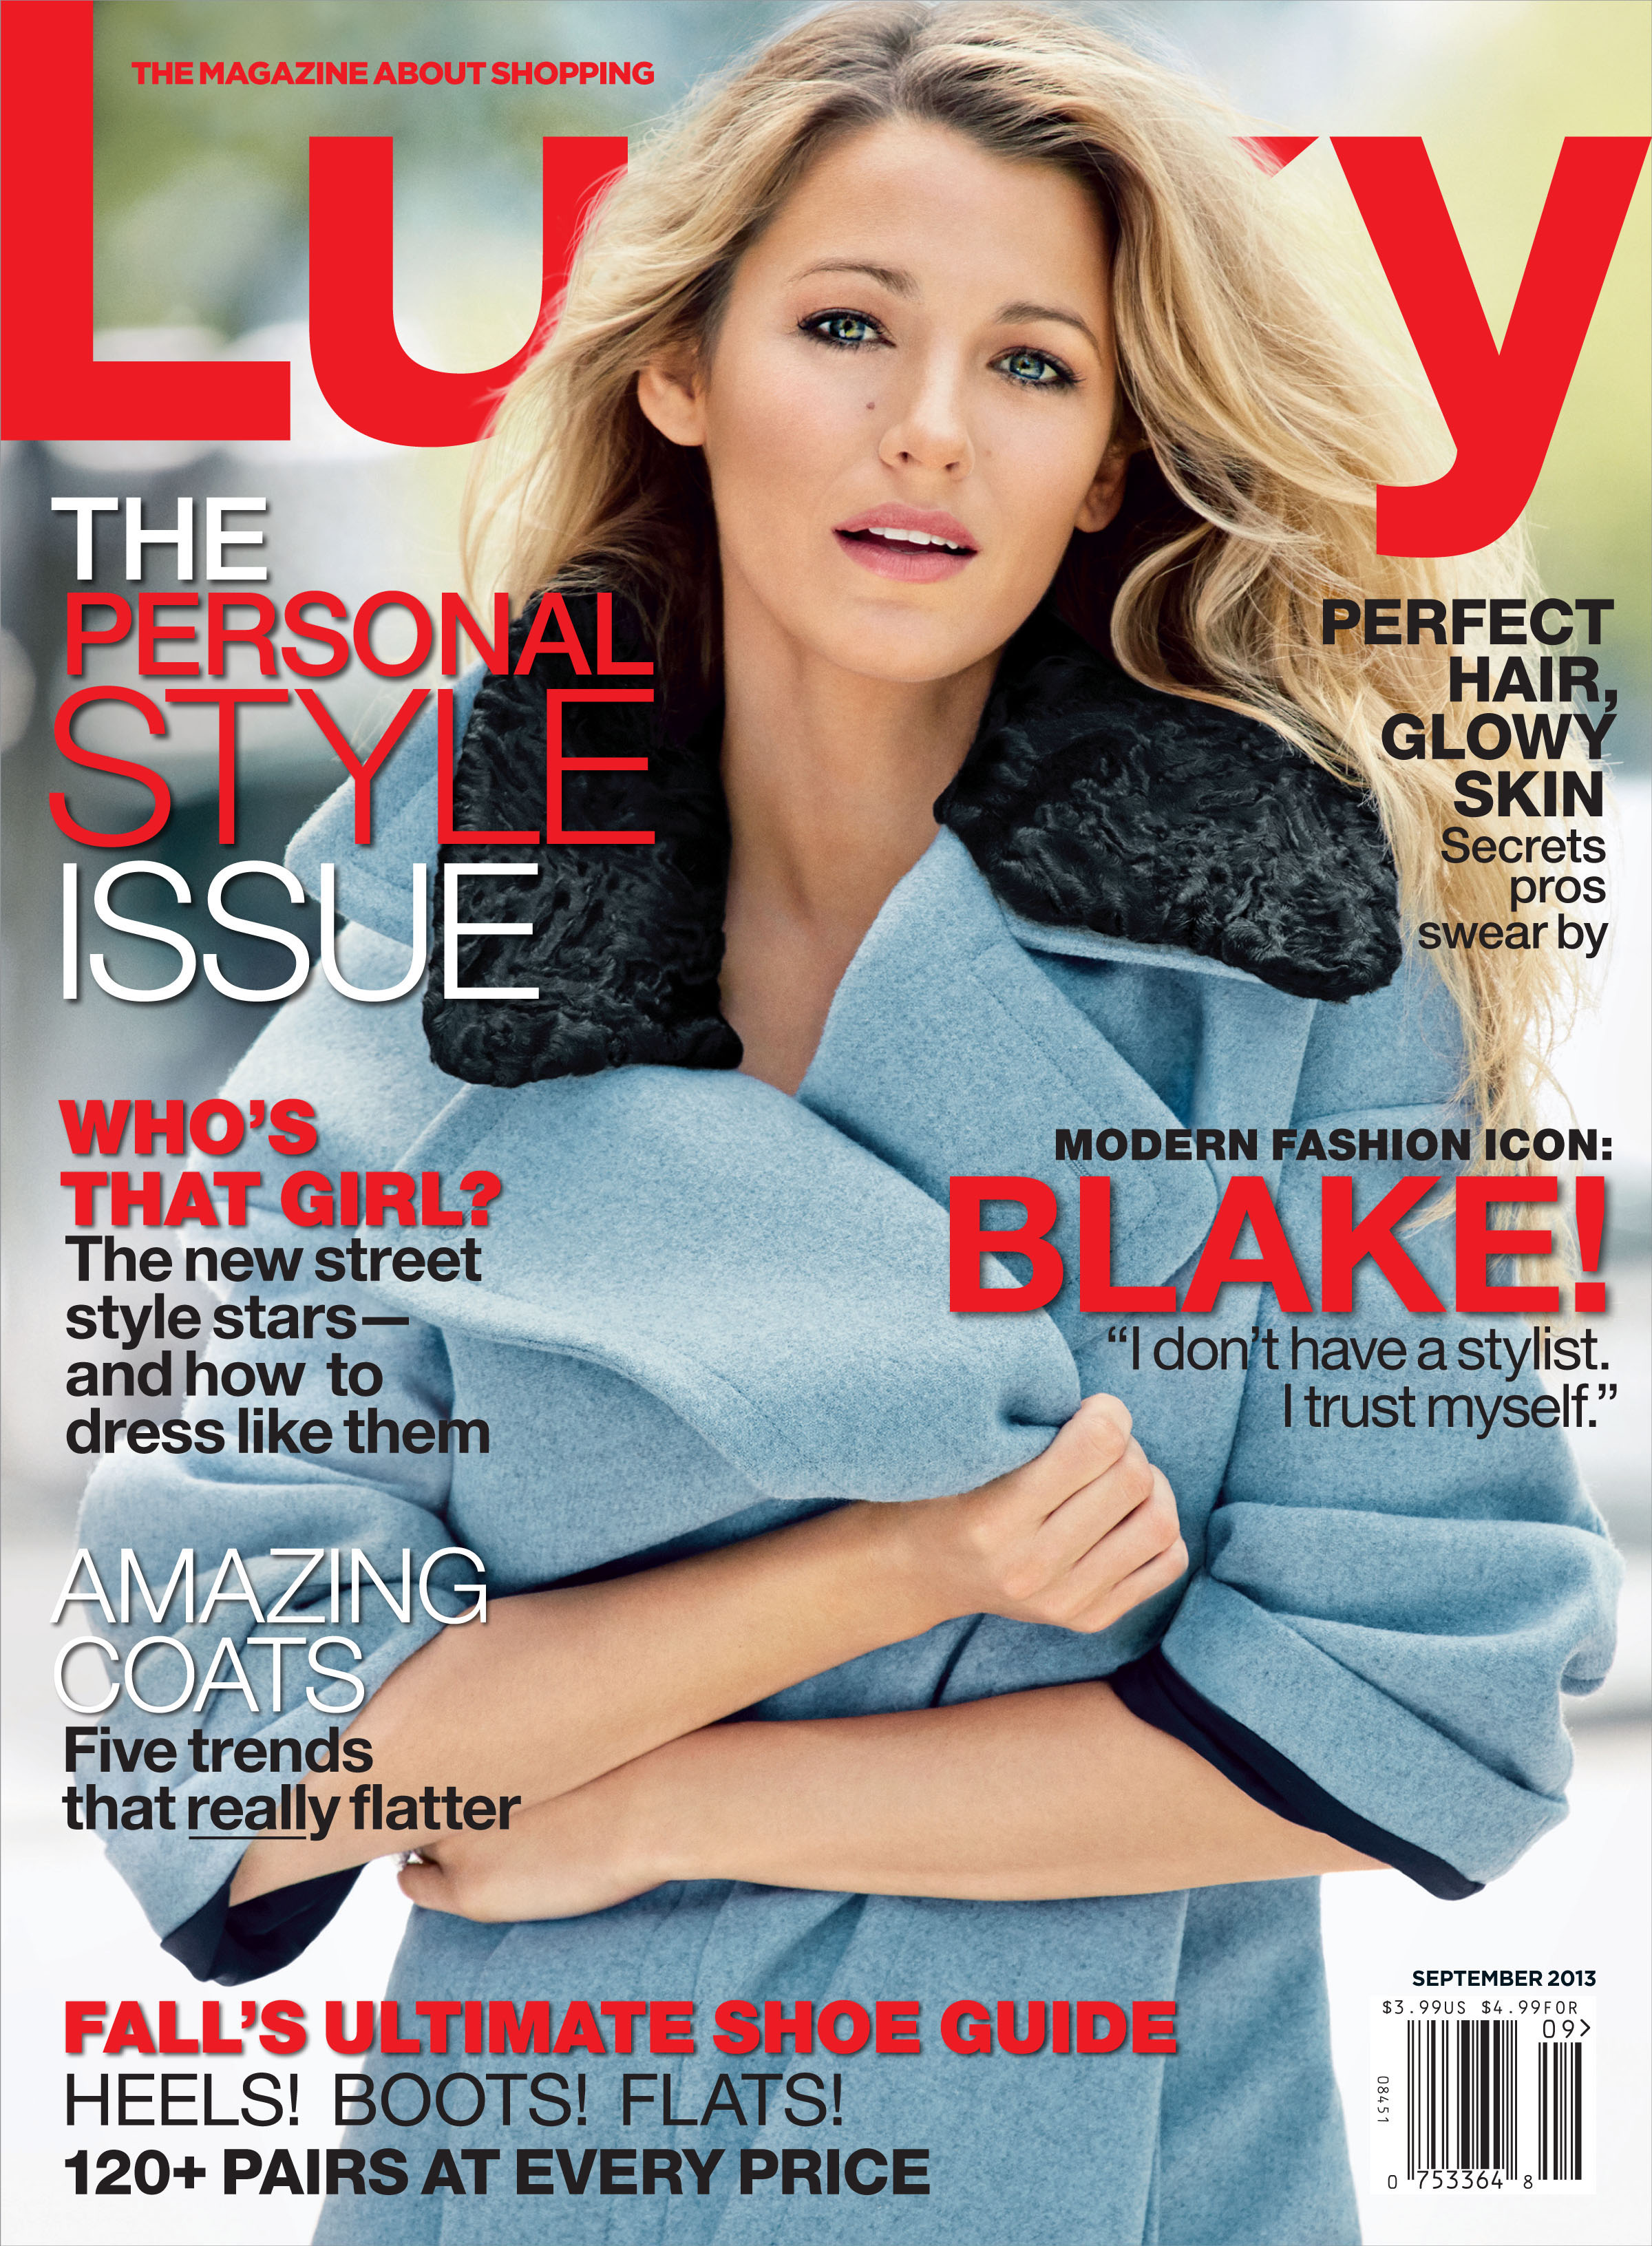 Lucky Magazine to be spun off in joint venture with BeachMint